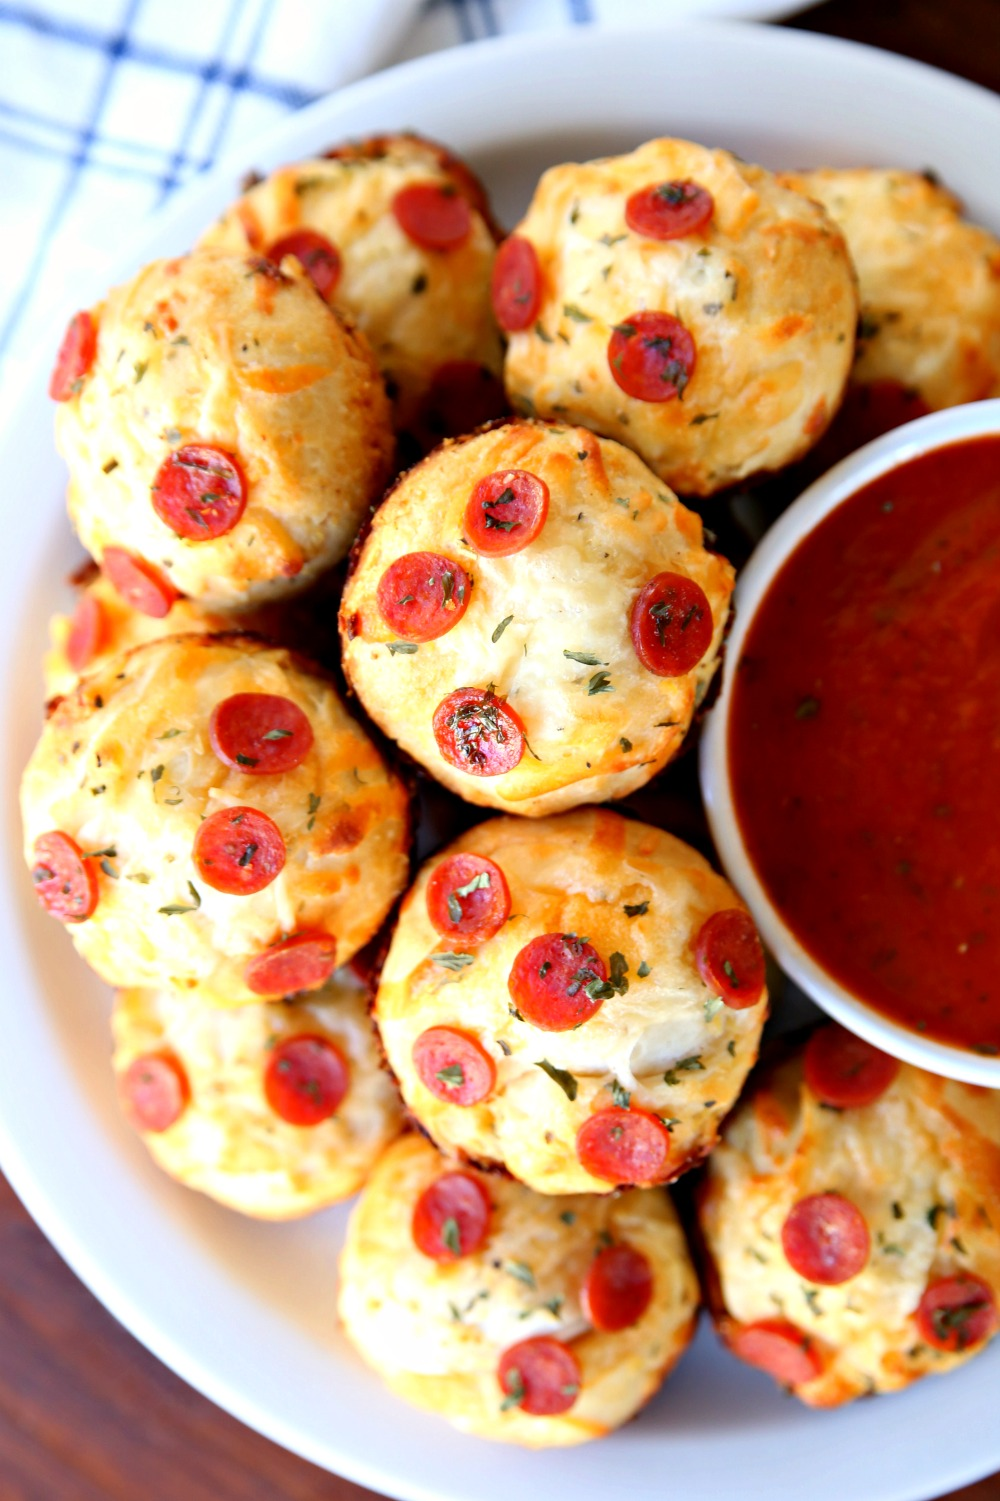 Easy Cheesy Garlic Muffins - The perfect savory appetizer to serve with pasta and pizza.